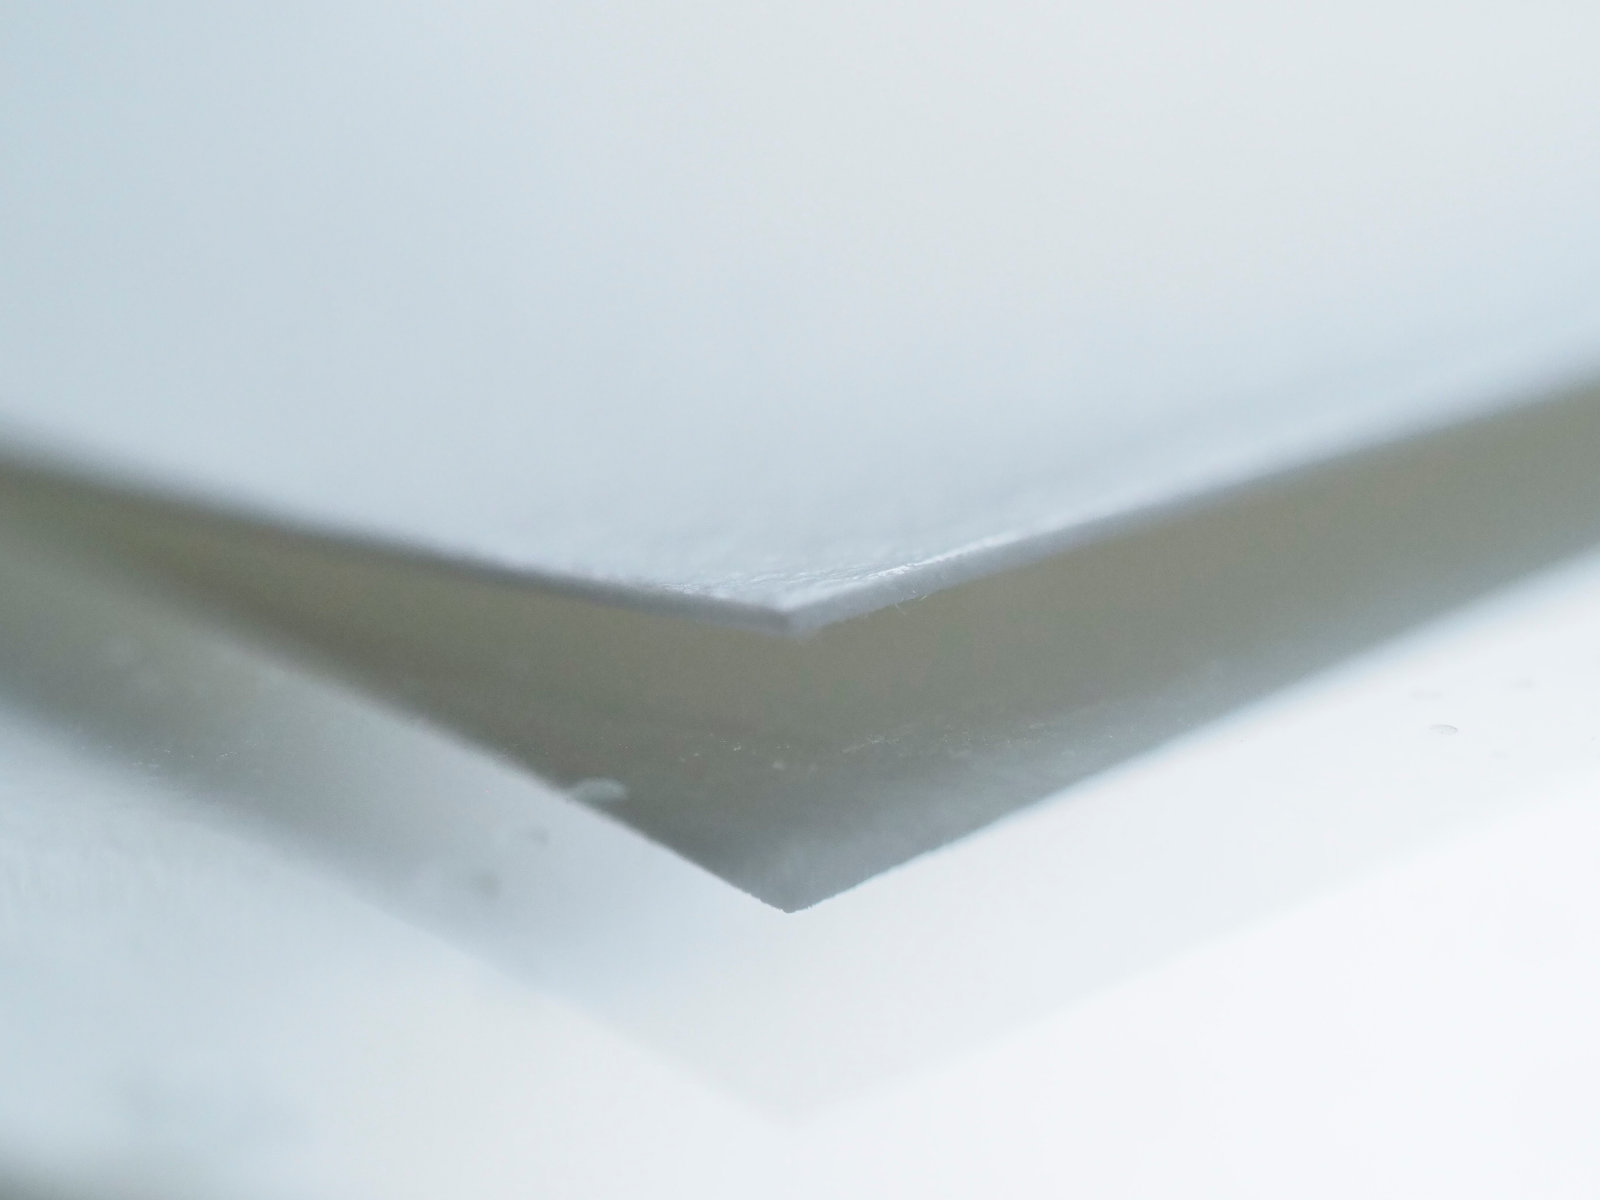 Print lifting from the acrylic plate